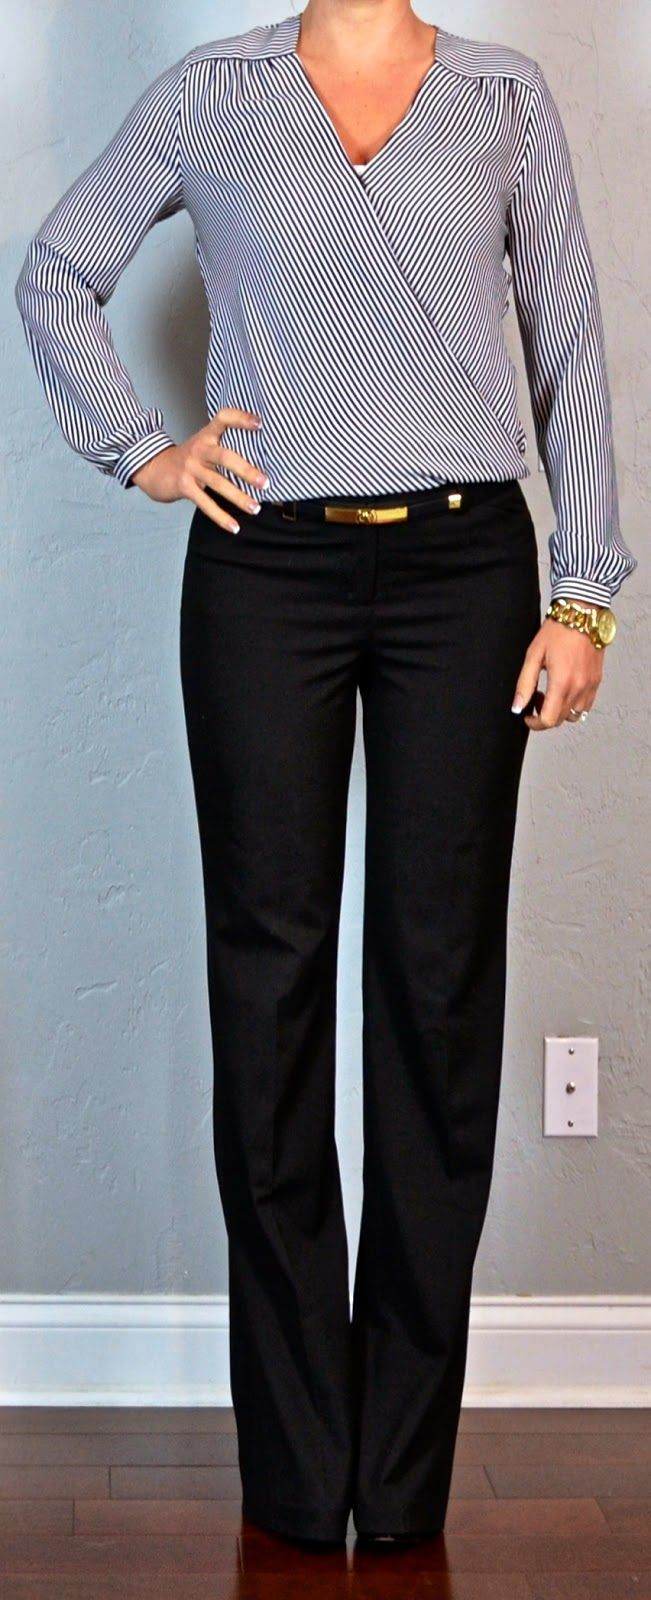 I have a pair of 'editor' pants! :) From outfit post: stripe crossover blouse, black 'editor' pants